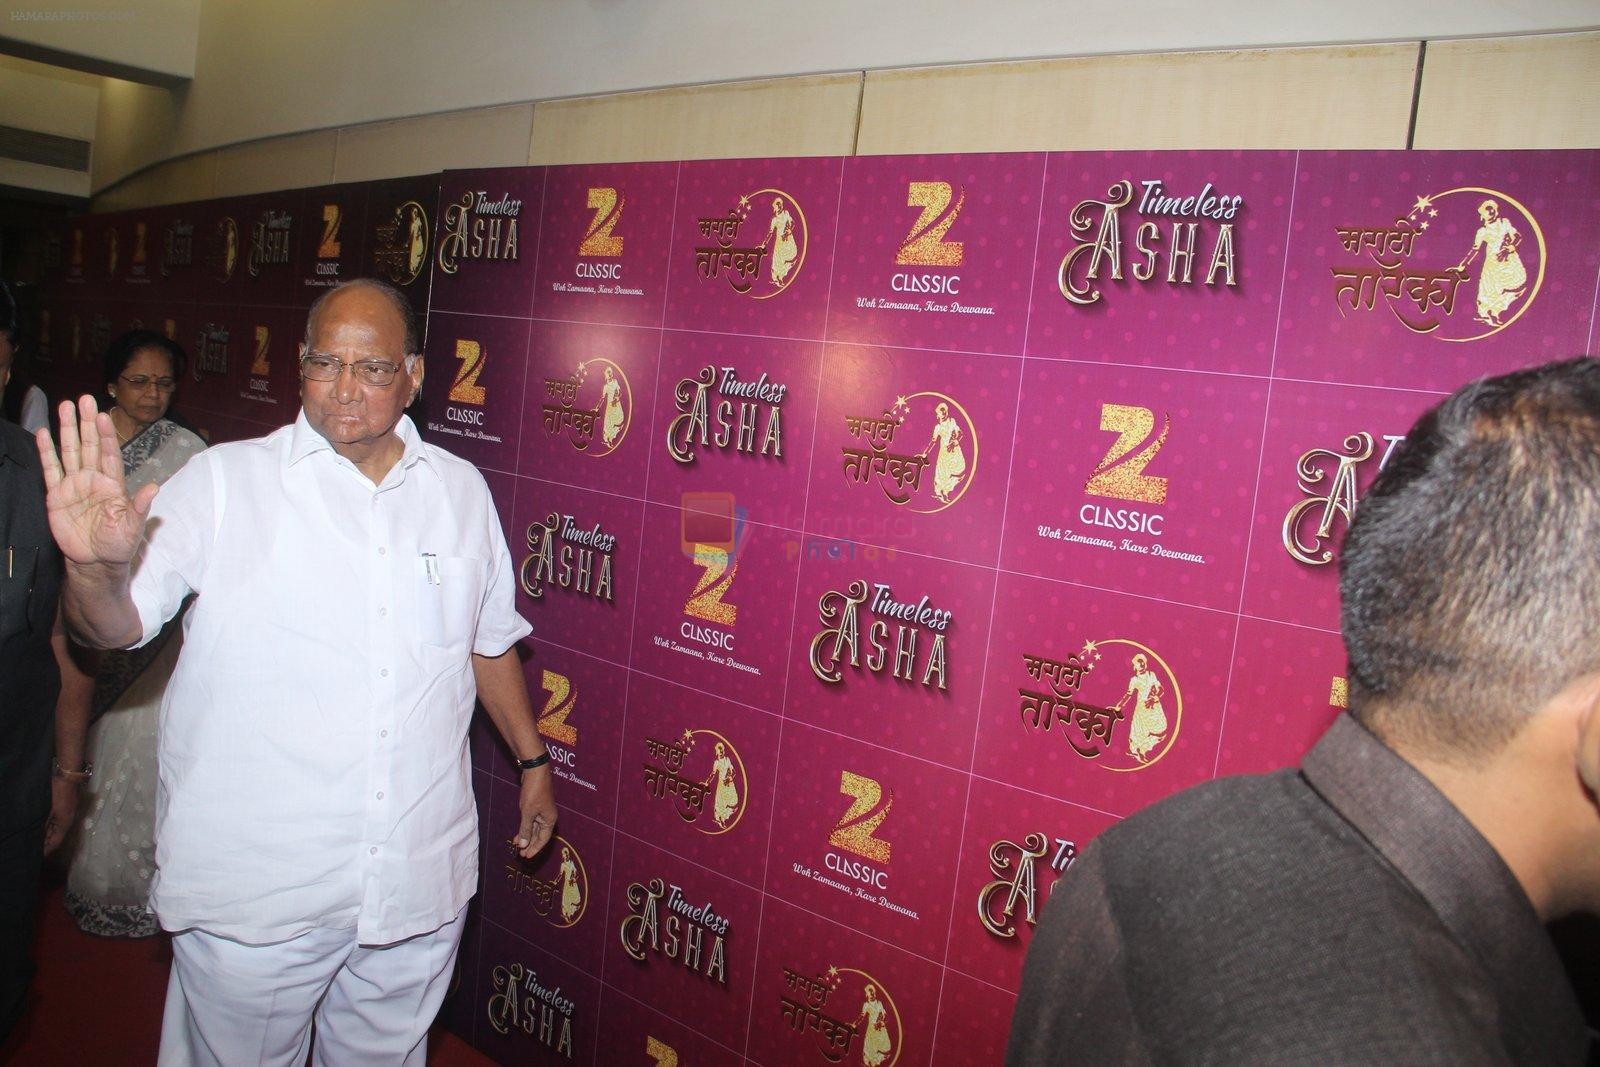 Sharad Pawar during the musical concert Timless Asha organised by Zee Classsic on occasion of Bollywood singer Asha Bhosle 83rd birthday in Mumbai, India on September 8, 2016